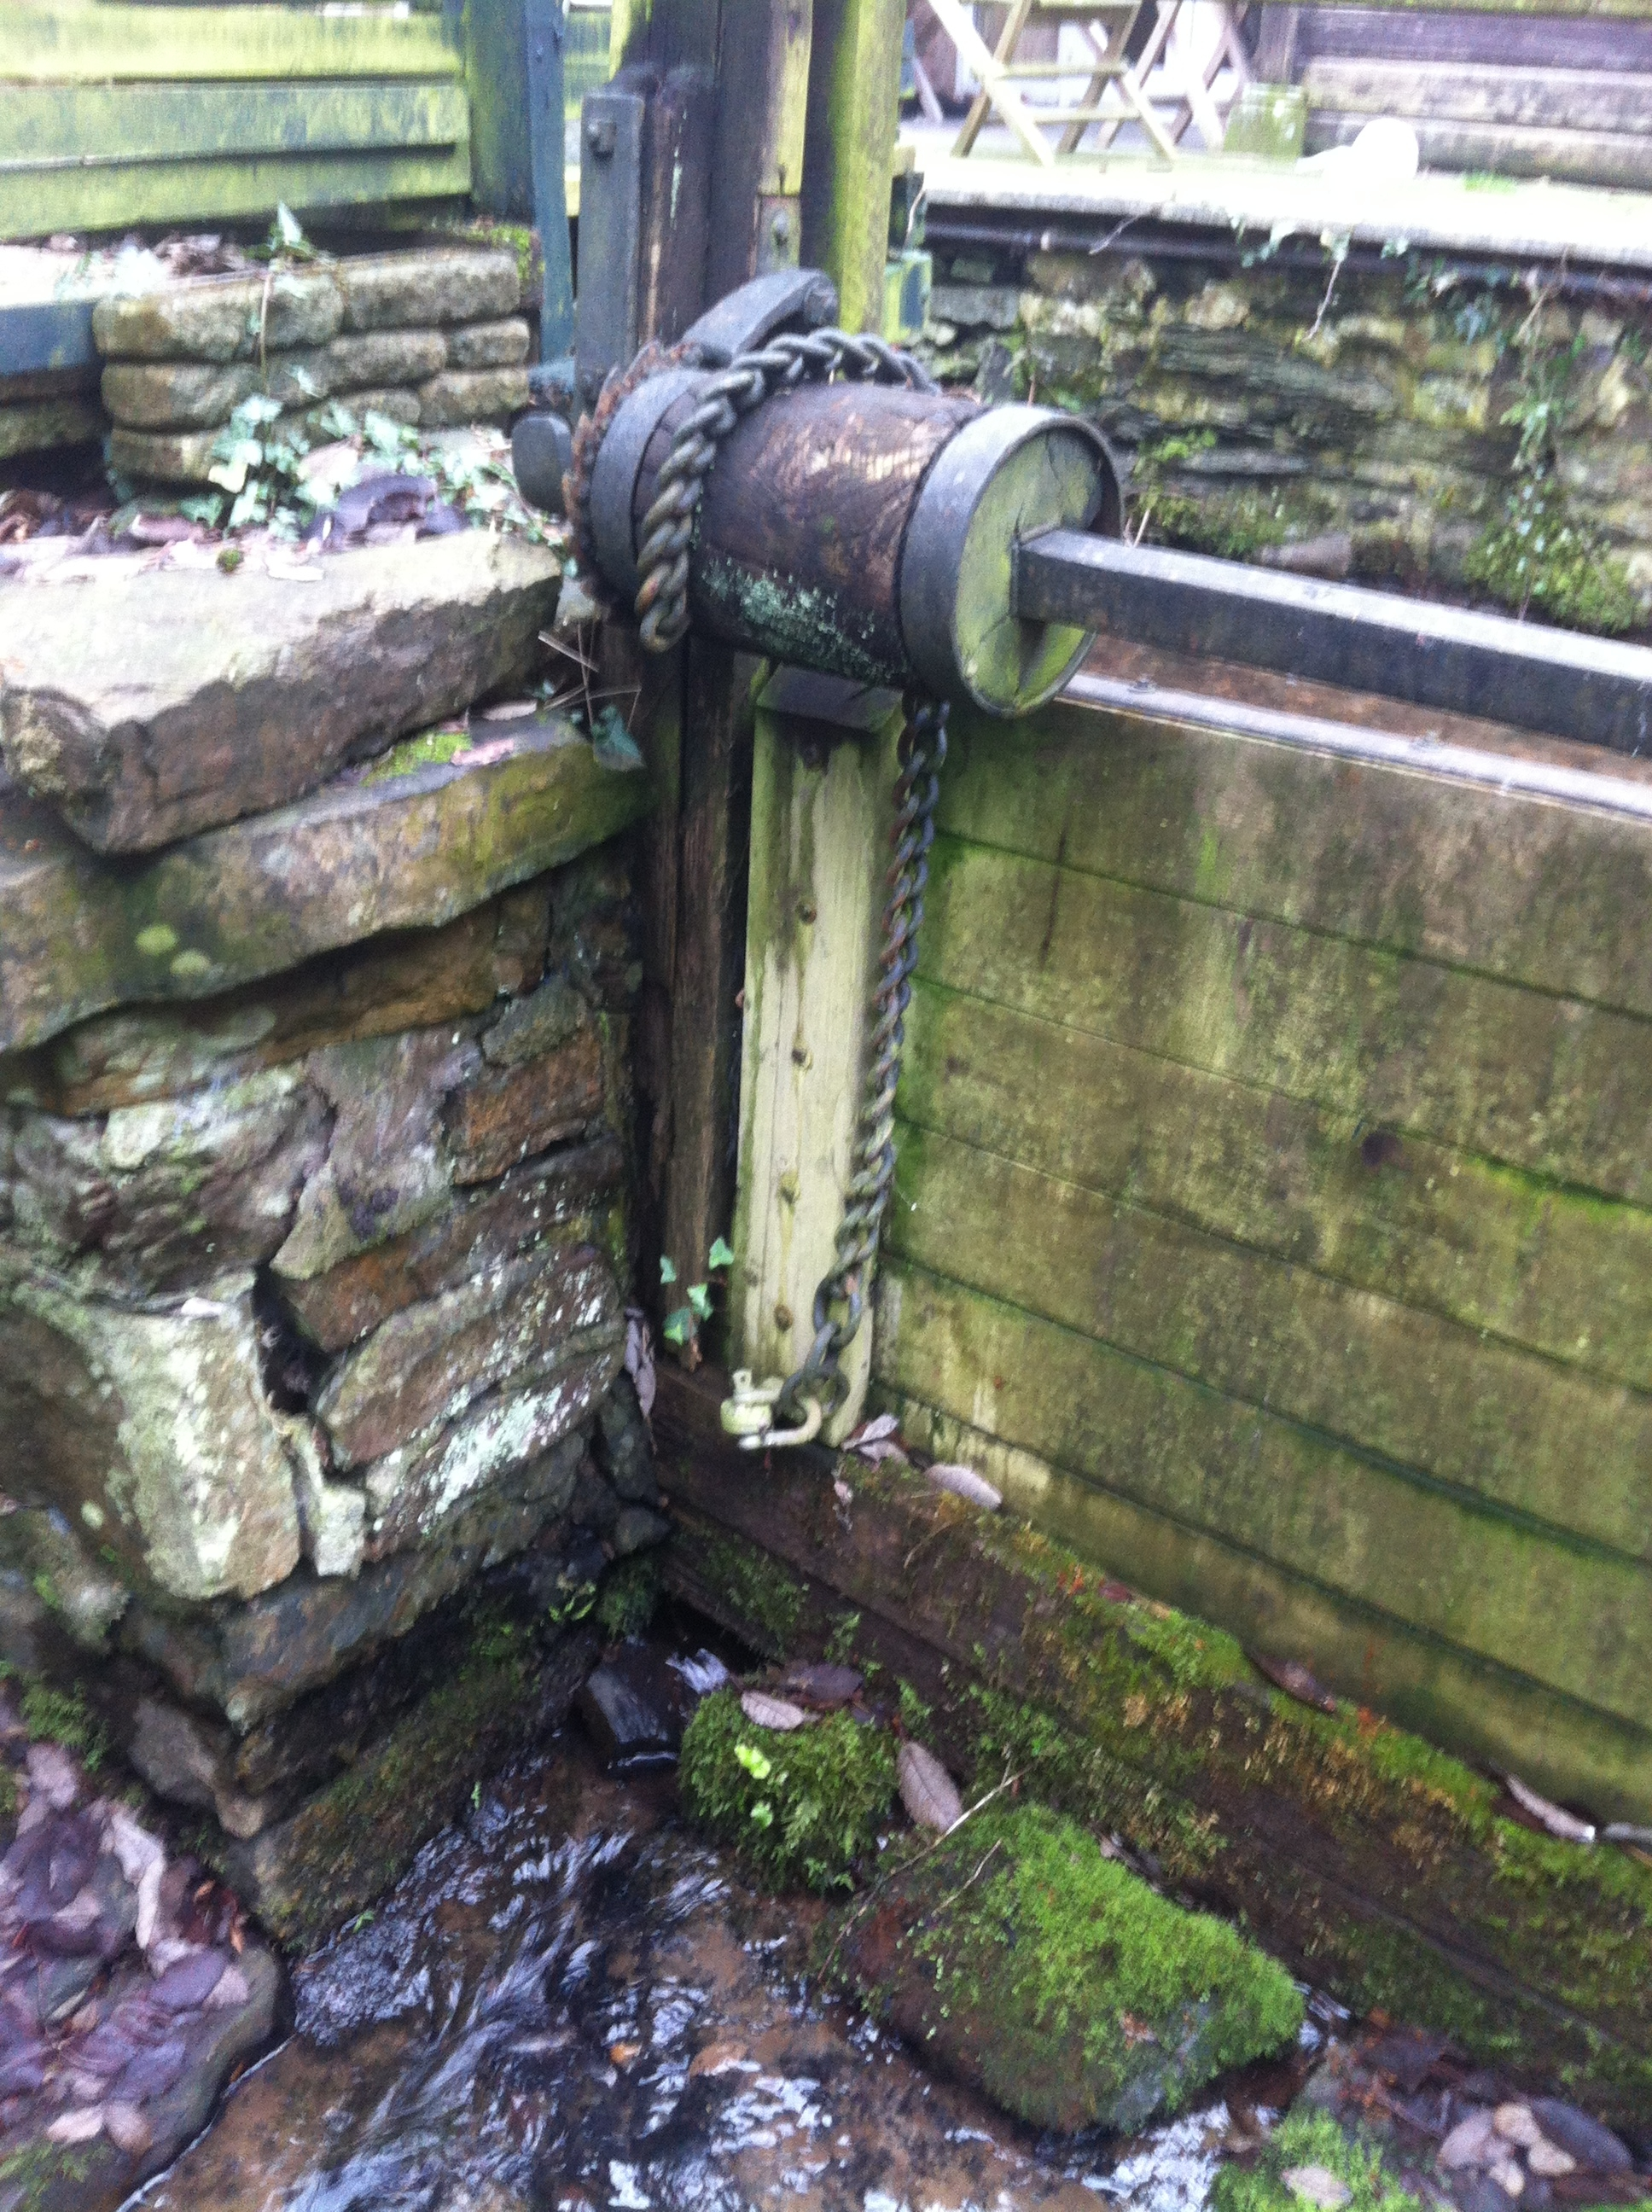 Sluice gate on Town Mills by-pass channel